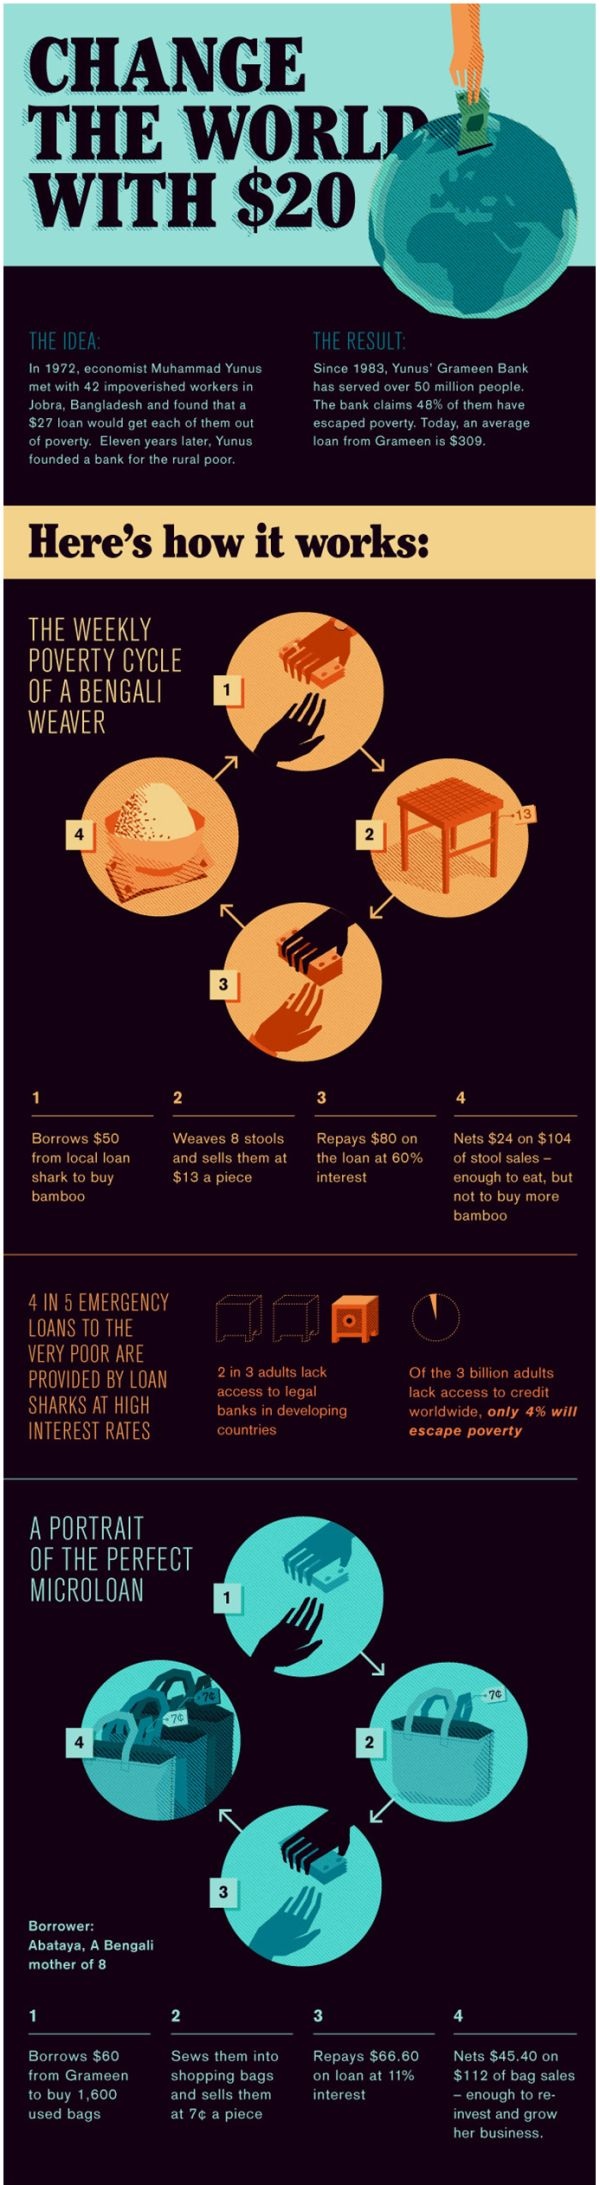 Microfinance: An Infographic - world vision micro blog explains microfinance through this infographic. re-pin if you think the people should learn more about microfinance!